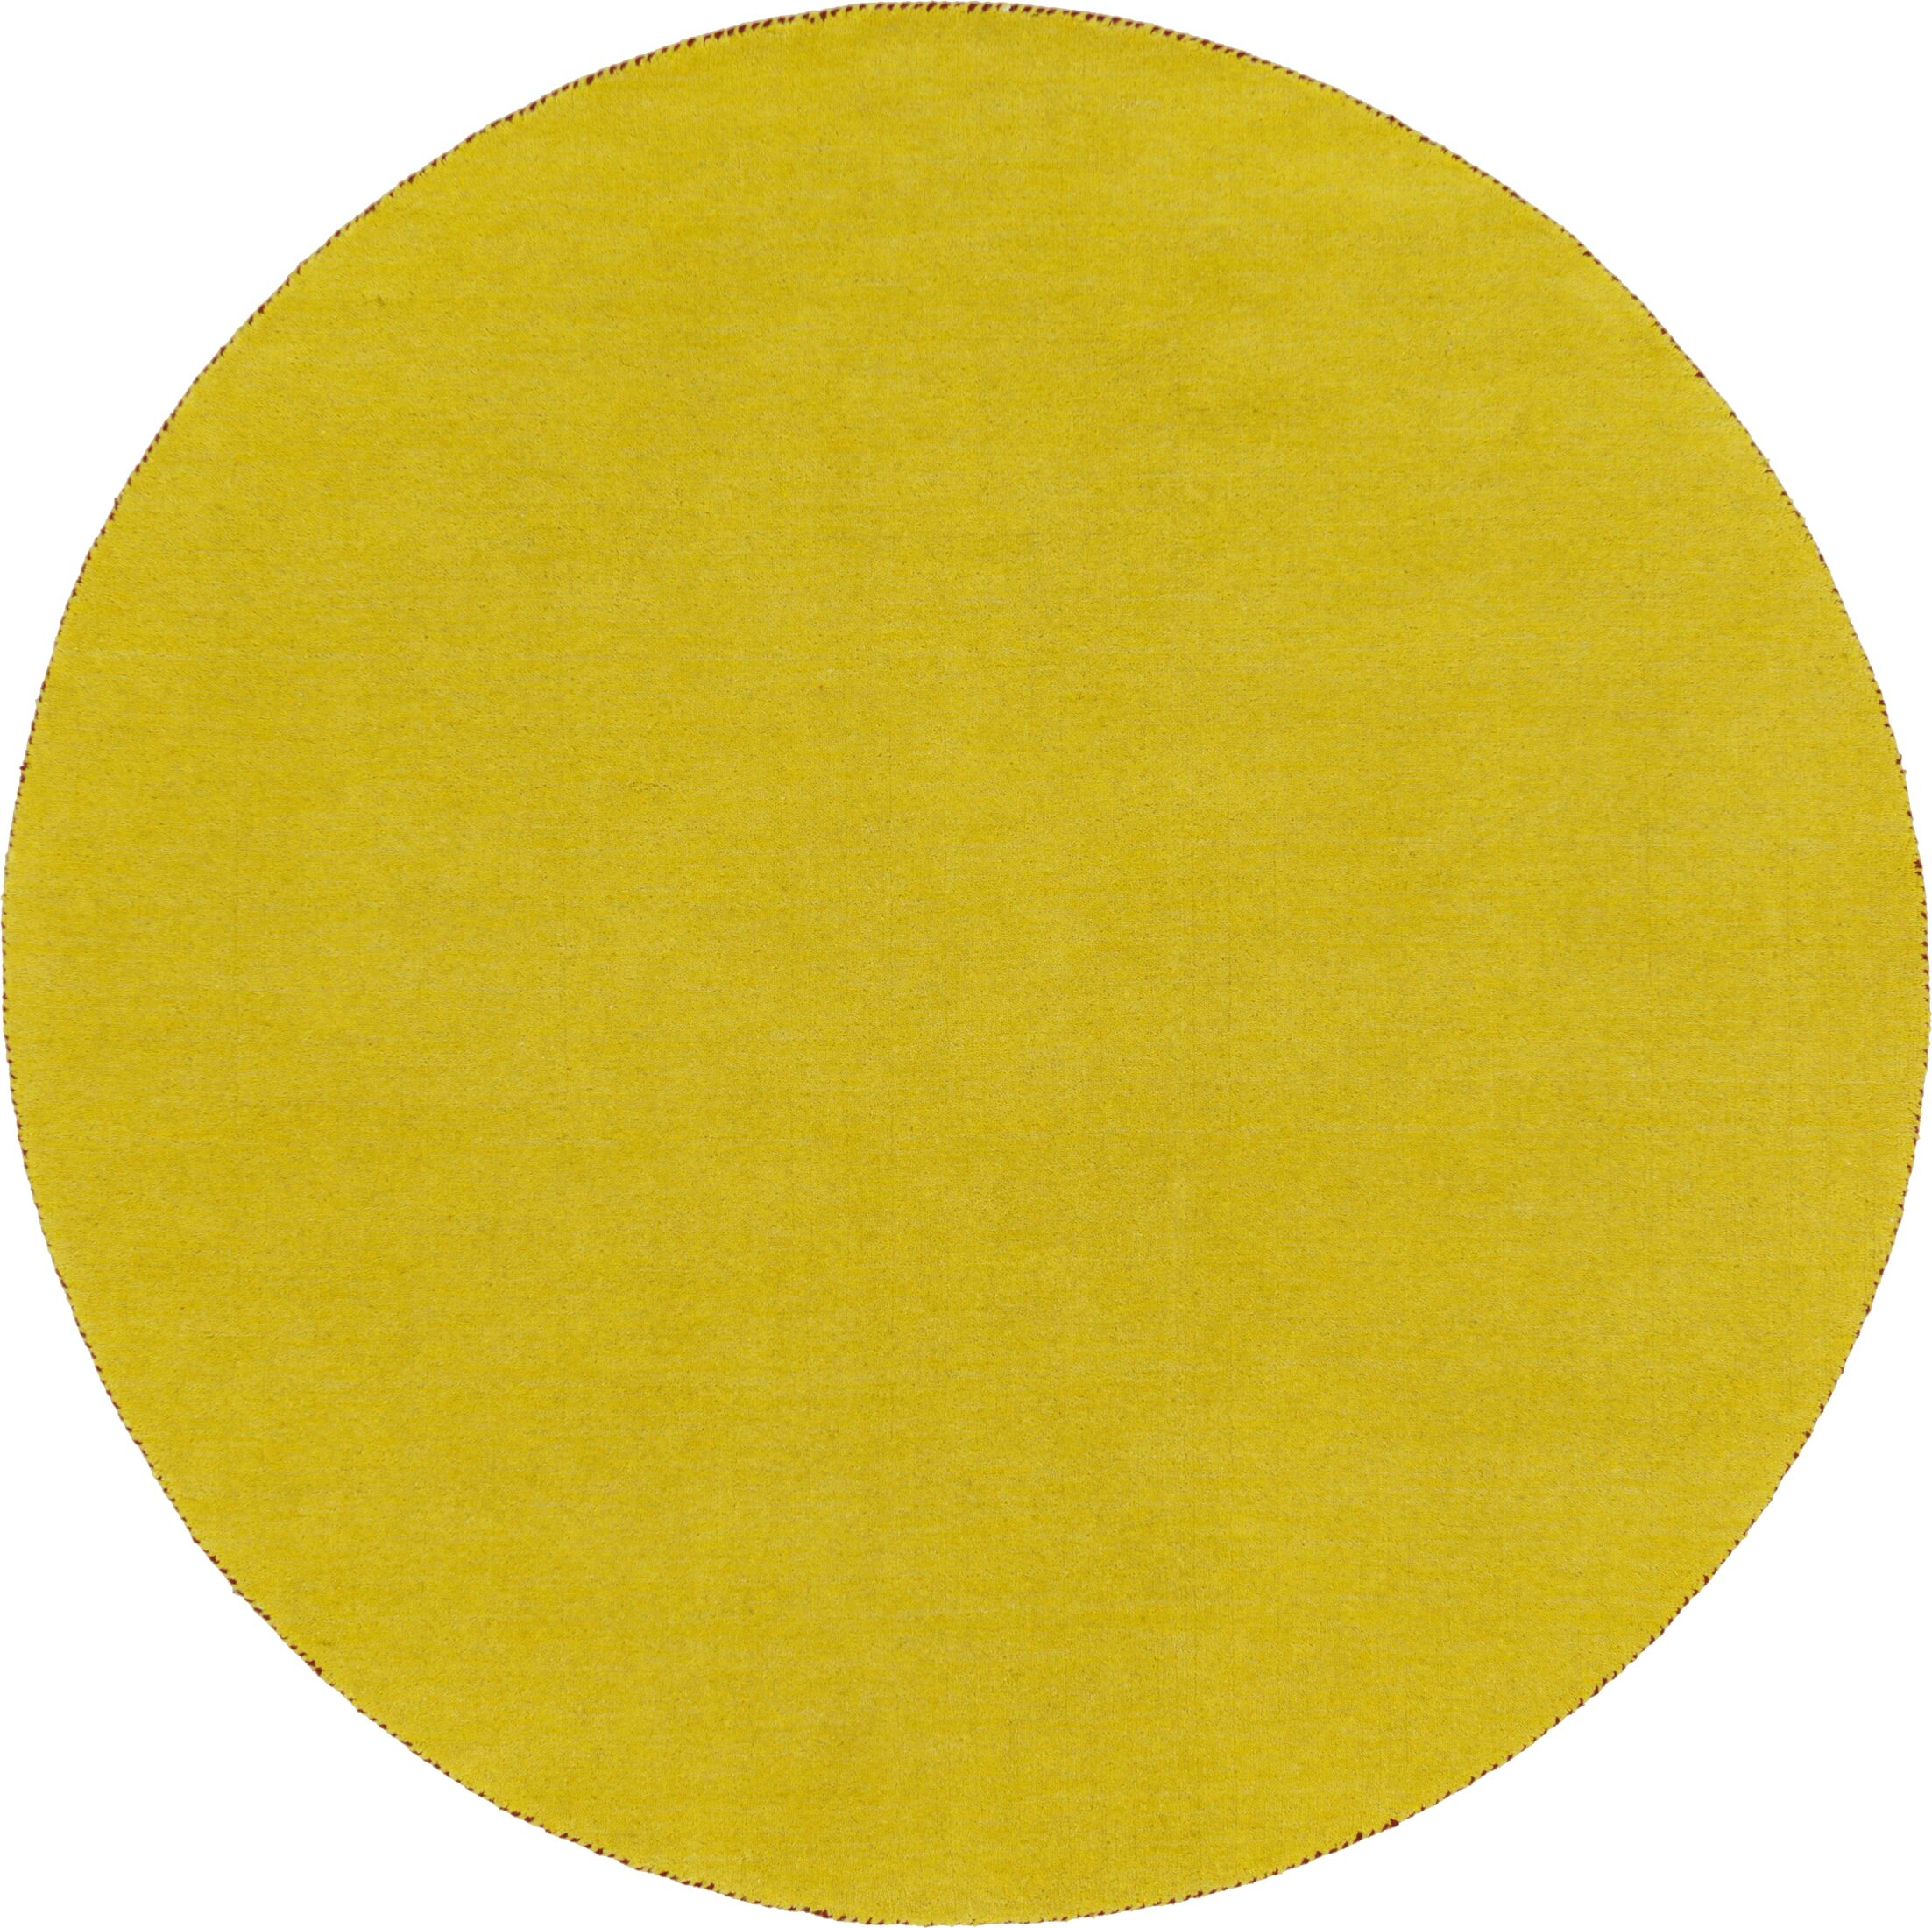 Taul Hand-Knotted Wool Yellow Area Rug Rug Size: 6' 7 x 6' 7